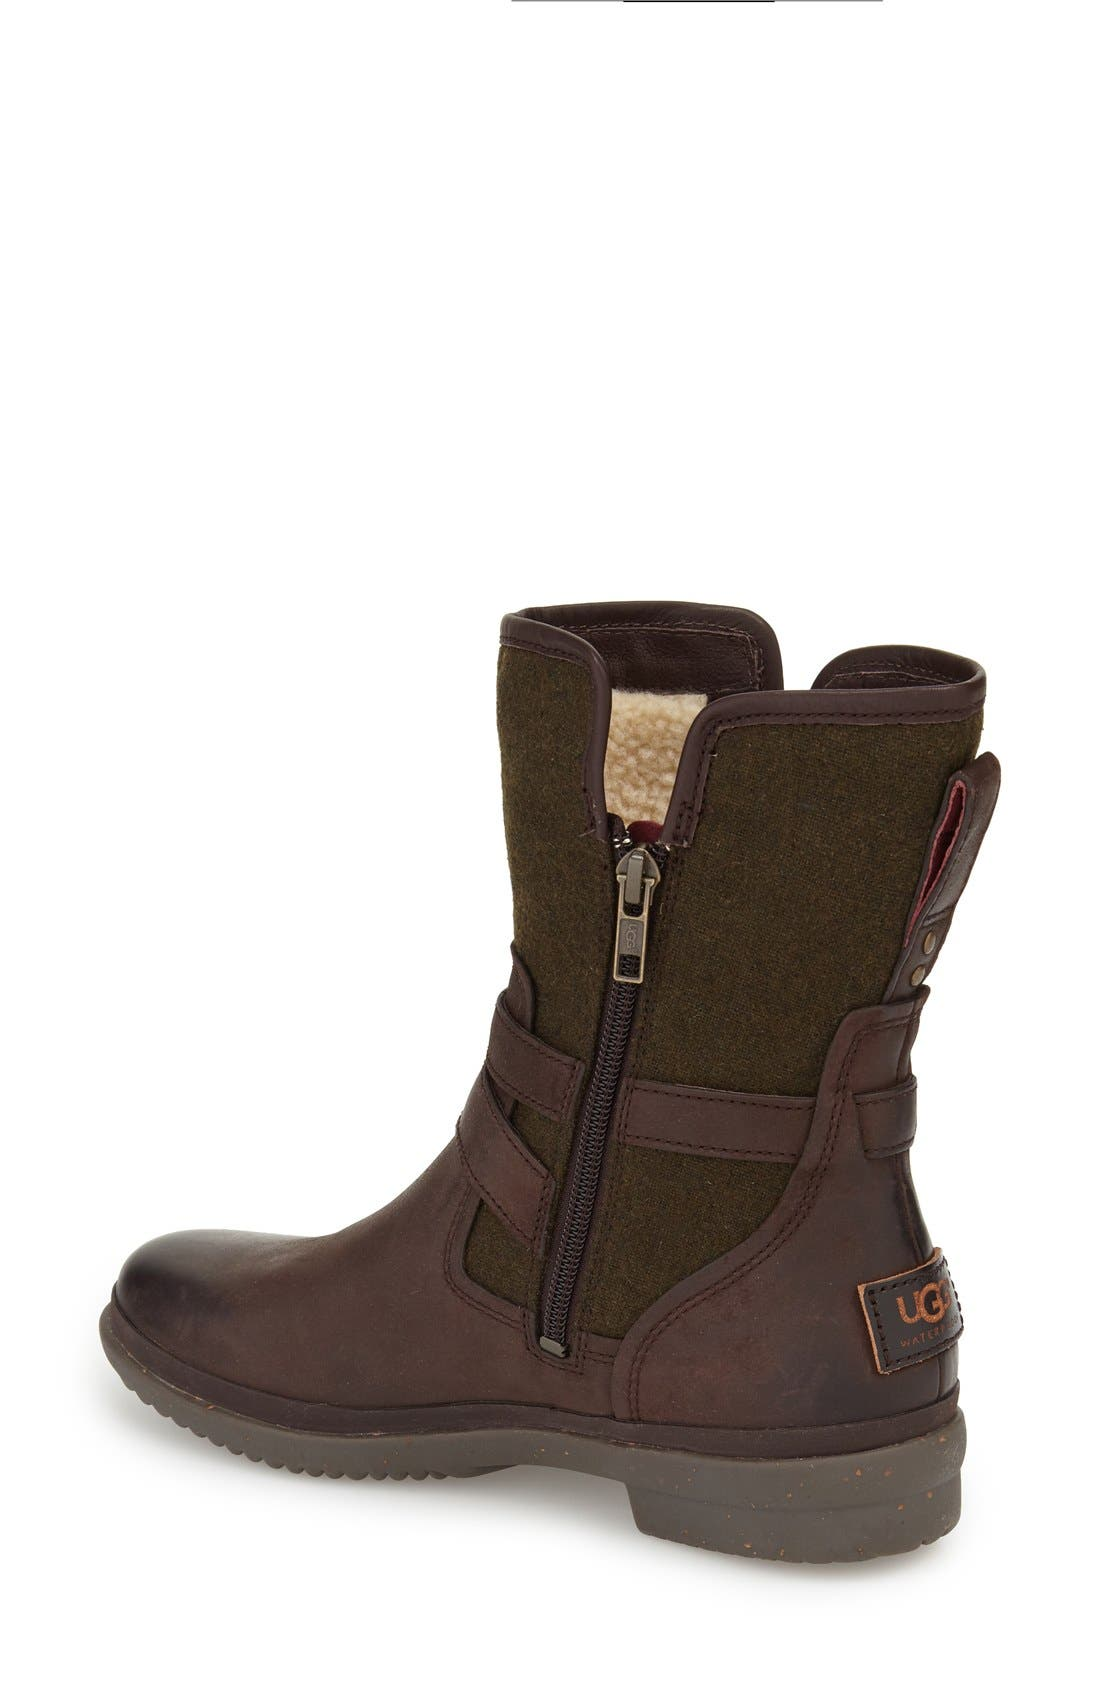 Alternate Image 2  - UGG® Simmens Waterproof Leather Boot (Women)